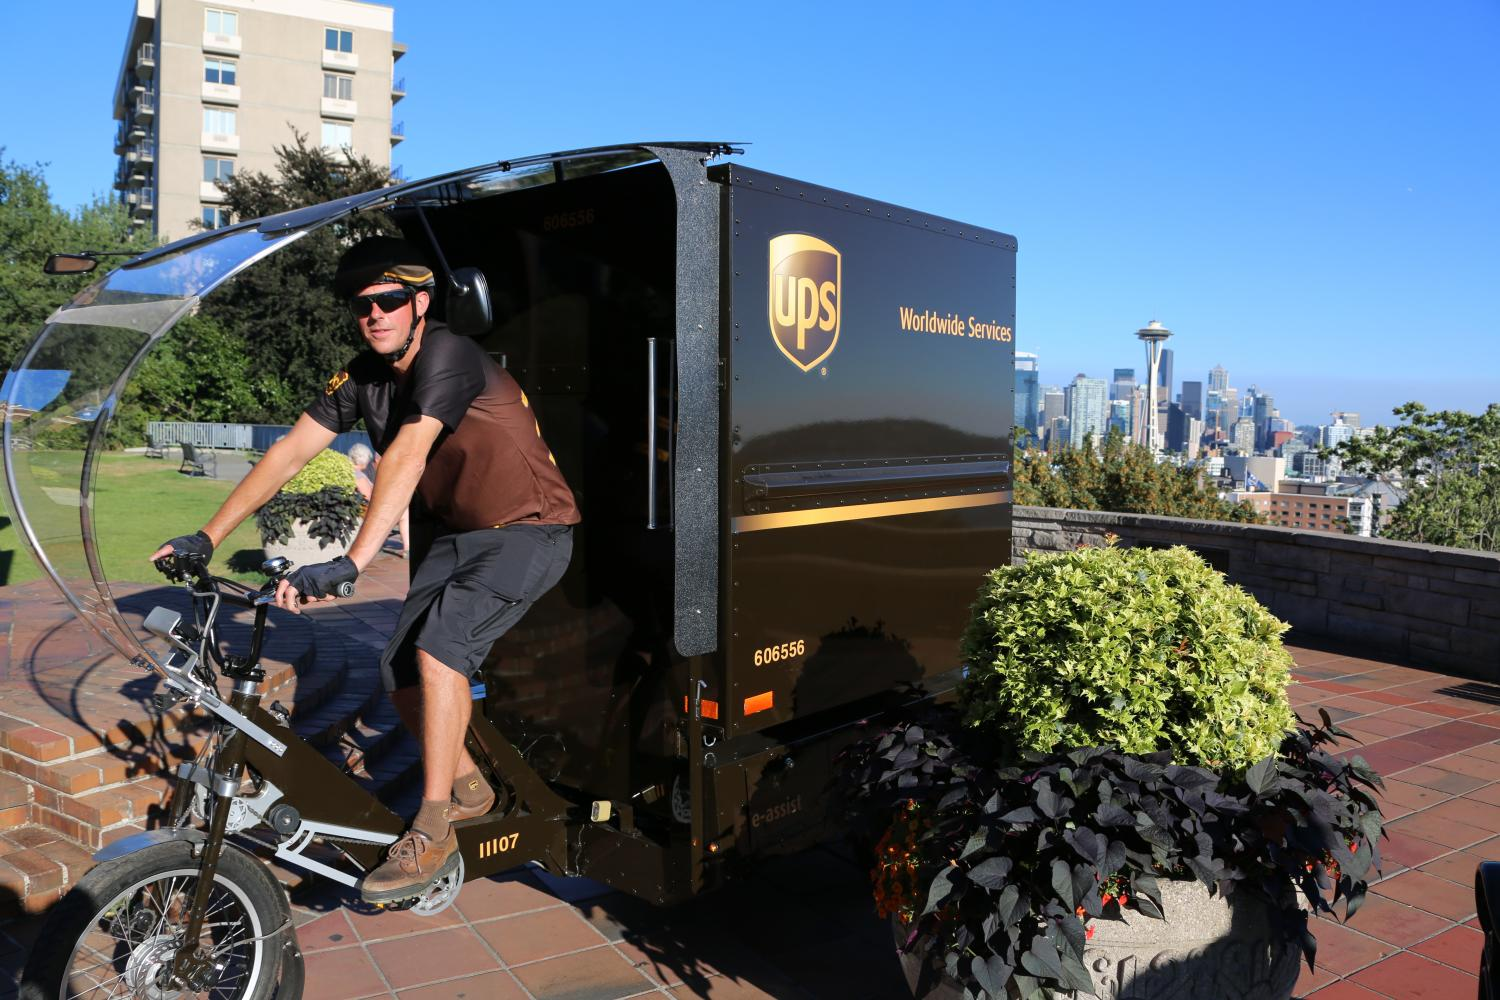 As UPS adds more hybrid and electric vehicles - and even bicycles - as it shifts to a low-carbon fleet, the rattle of the engine you hear as trucks pull up to your house with that coveted package could soon become a thing of the past.